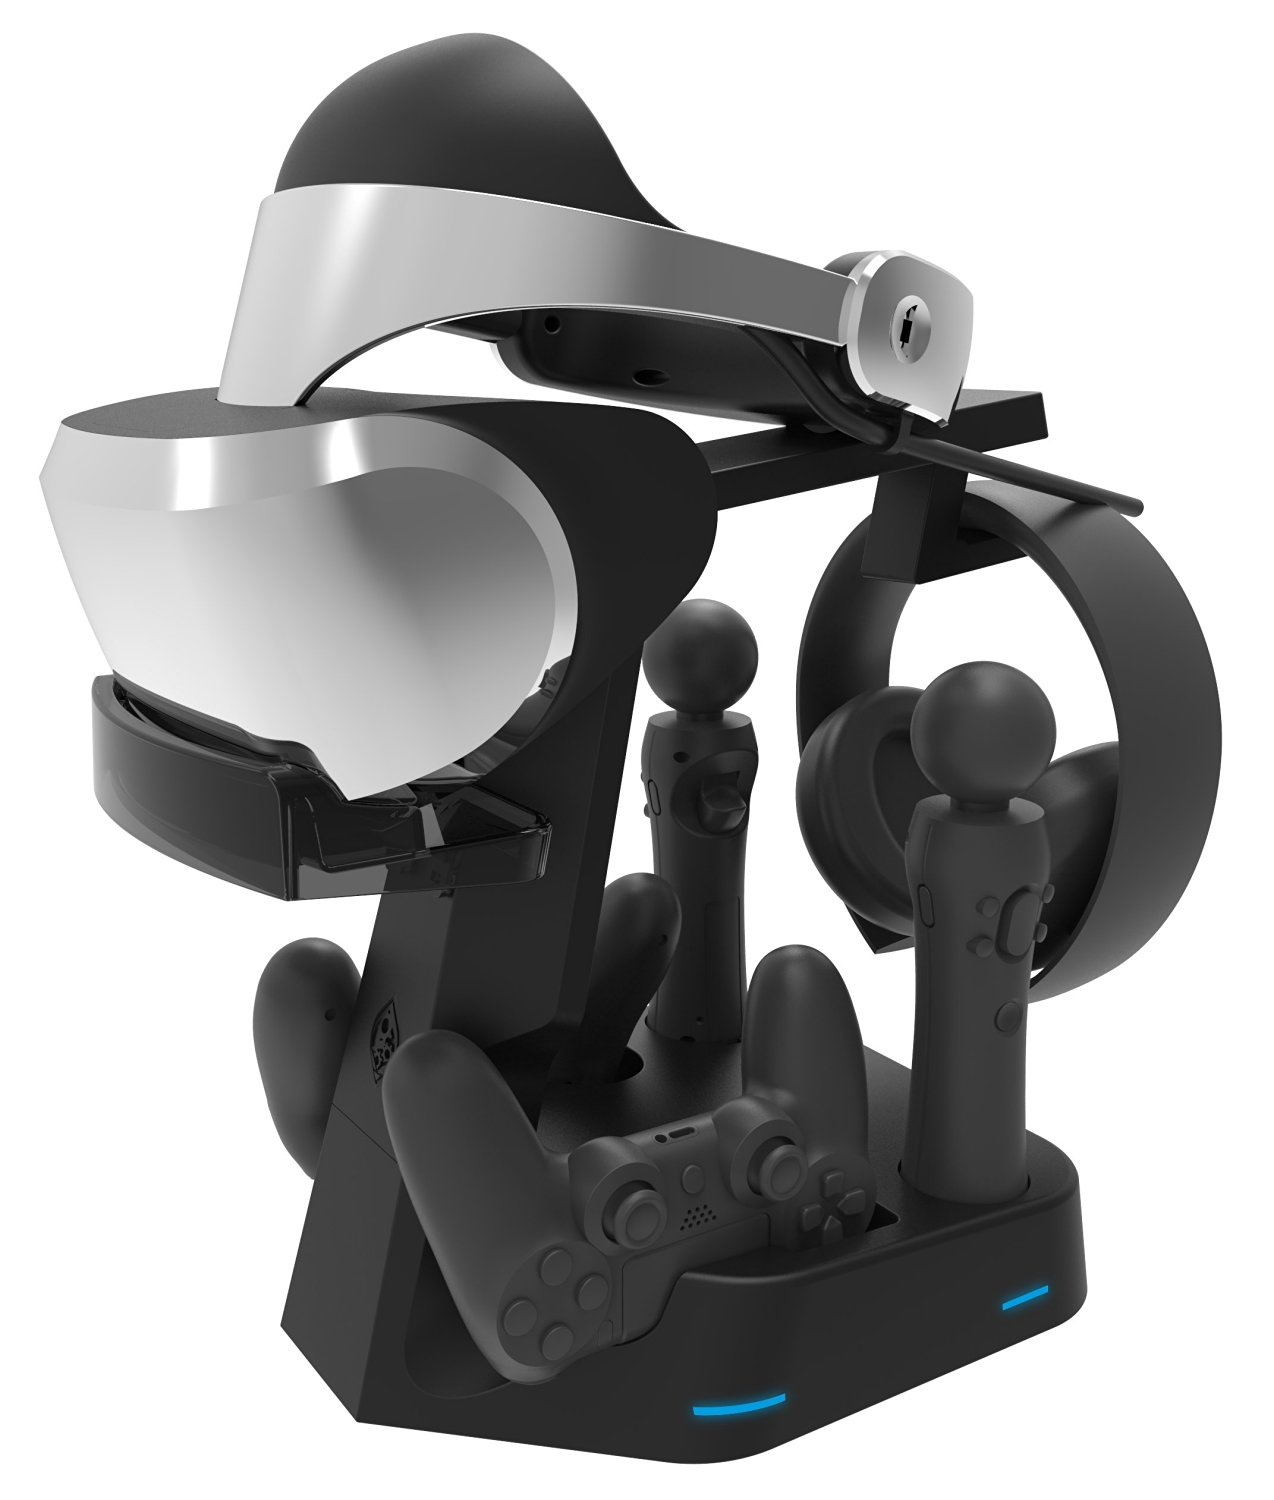 PlayStation VR Accessories Hit Major Online Retailers ...